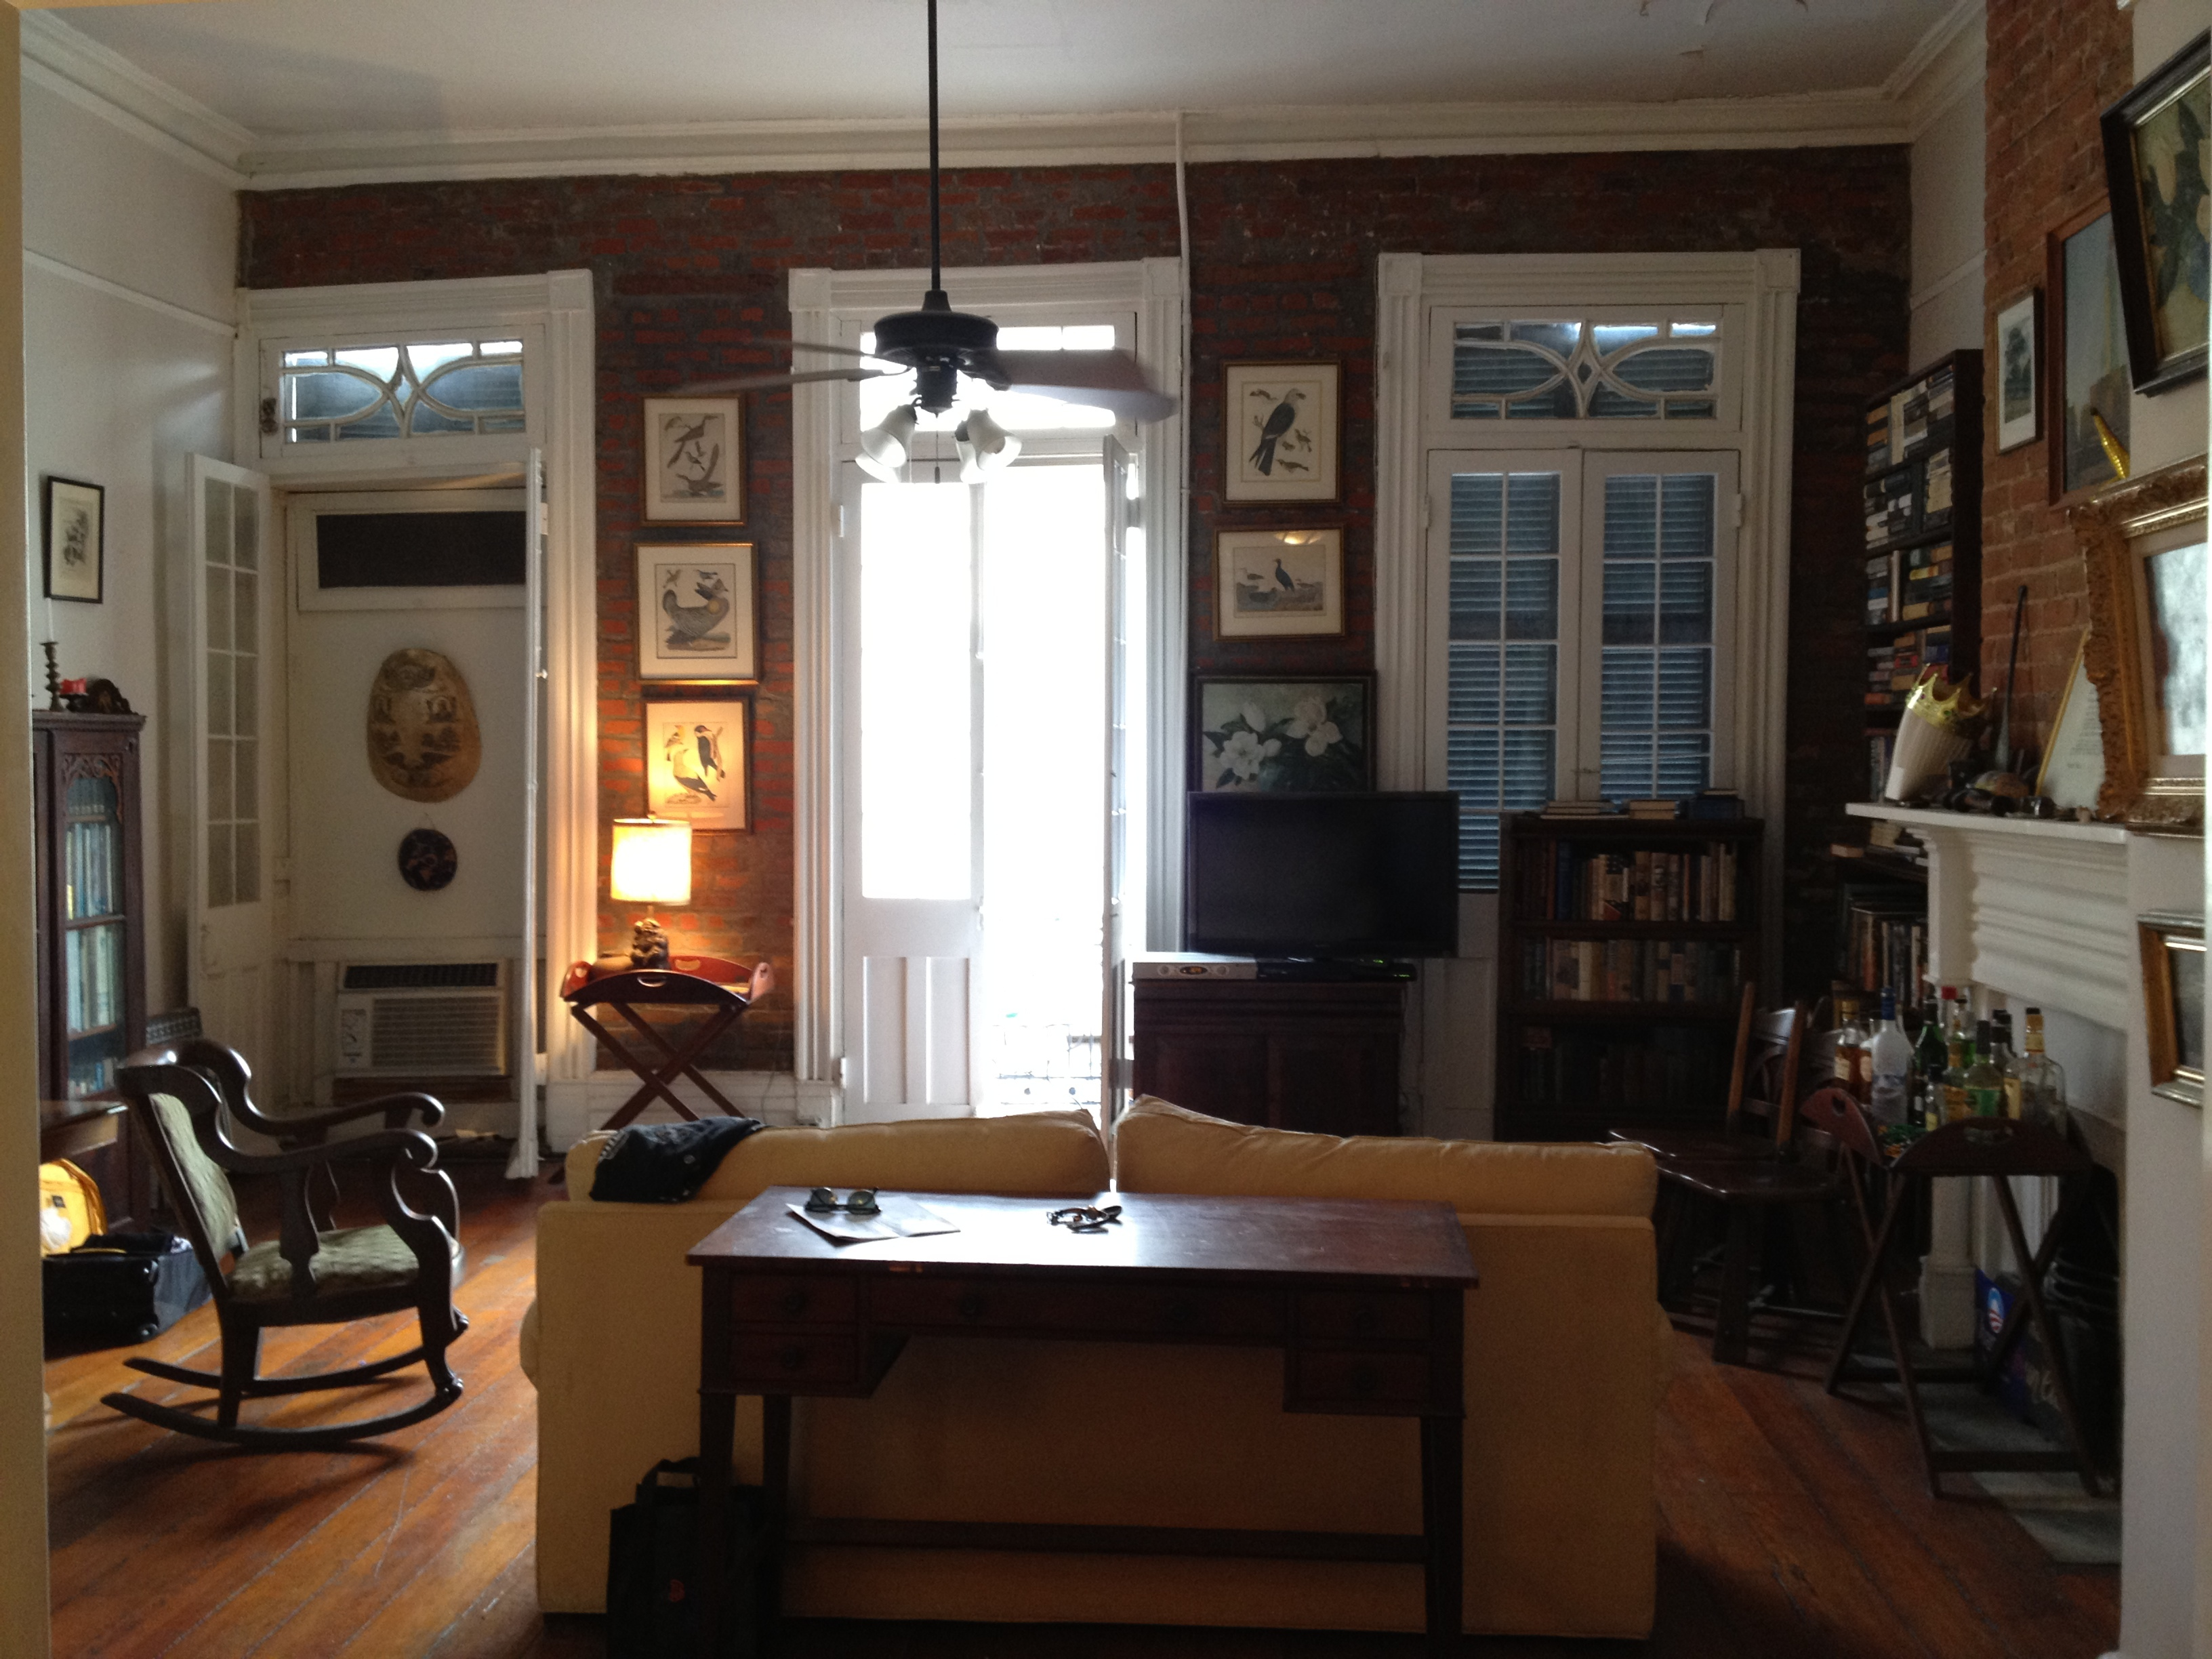 orleans french quarter apartment living room wikimedia commons